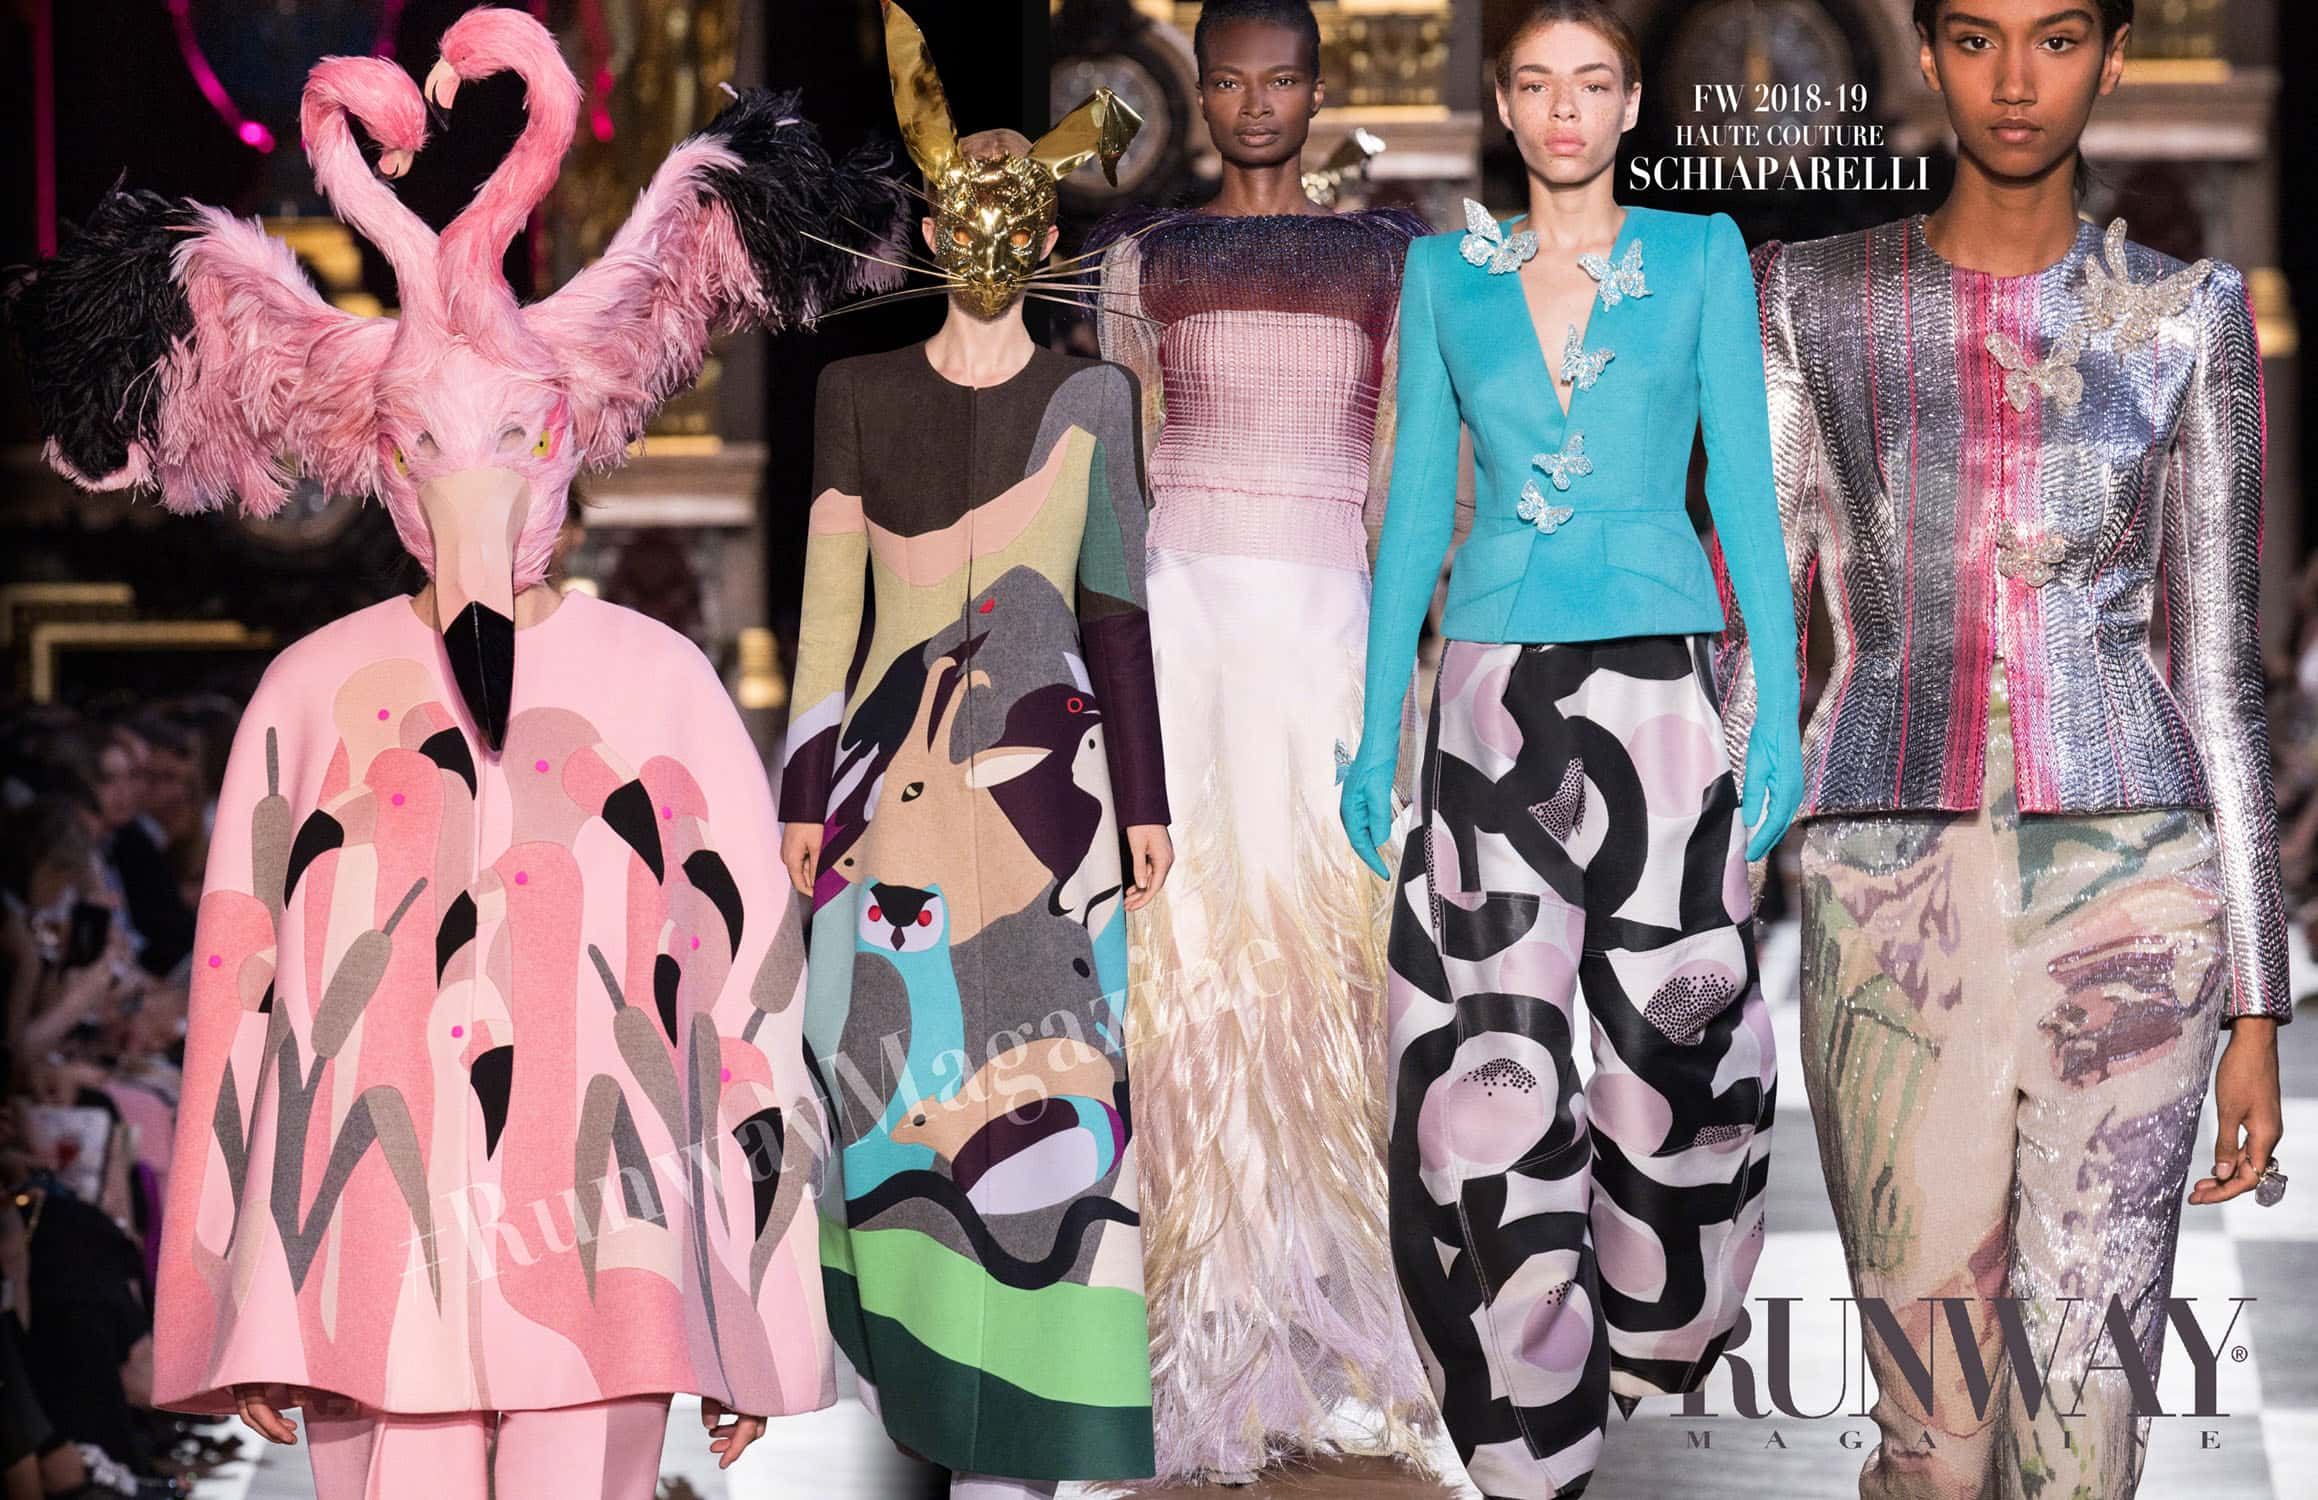 Schiaparelli Haute Couture Fall-Winter 2018-19 by RUNWAY MAGAZINE